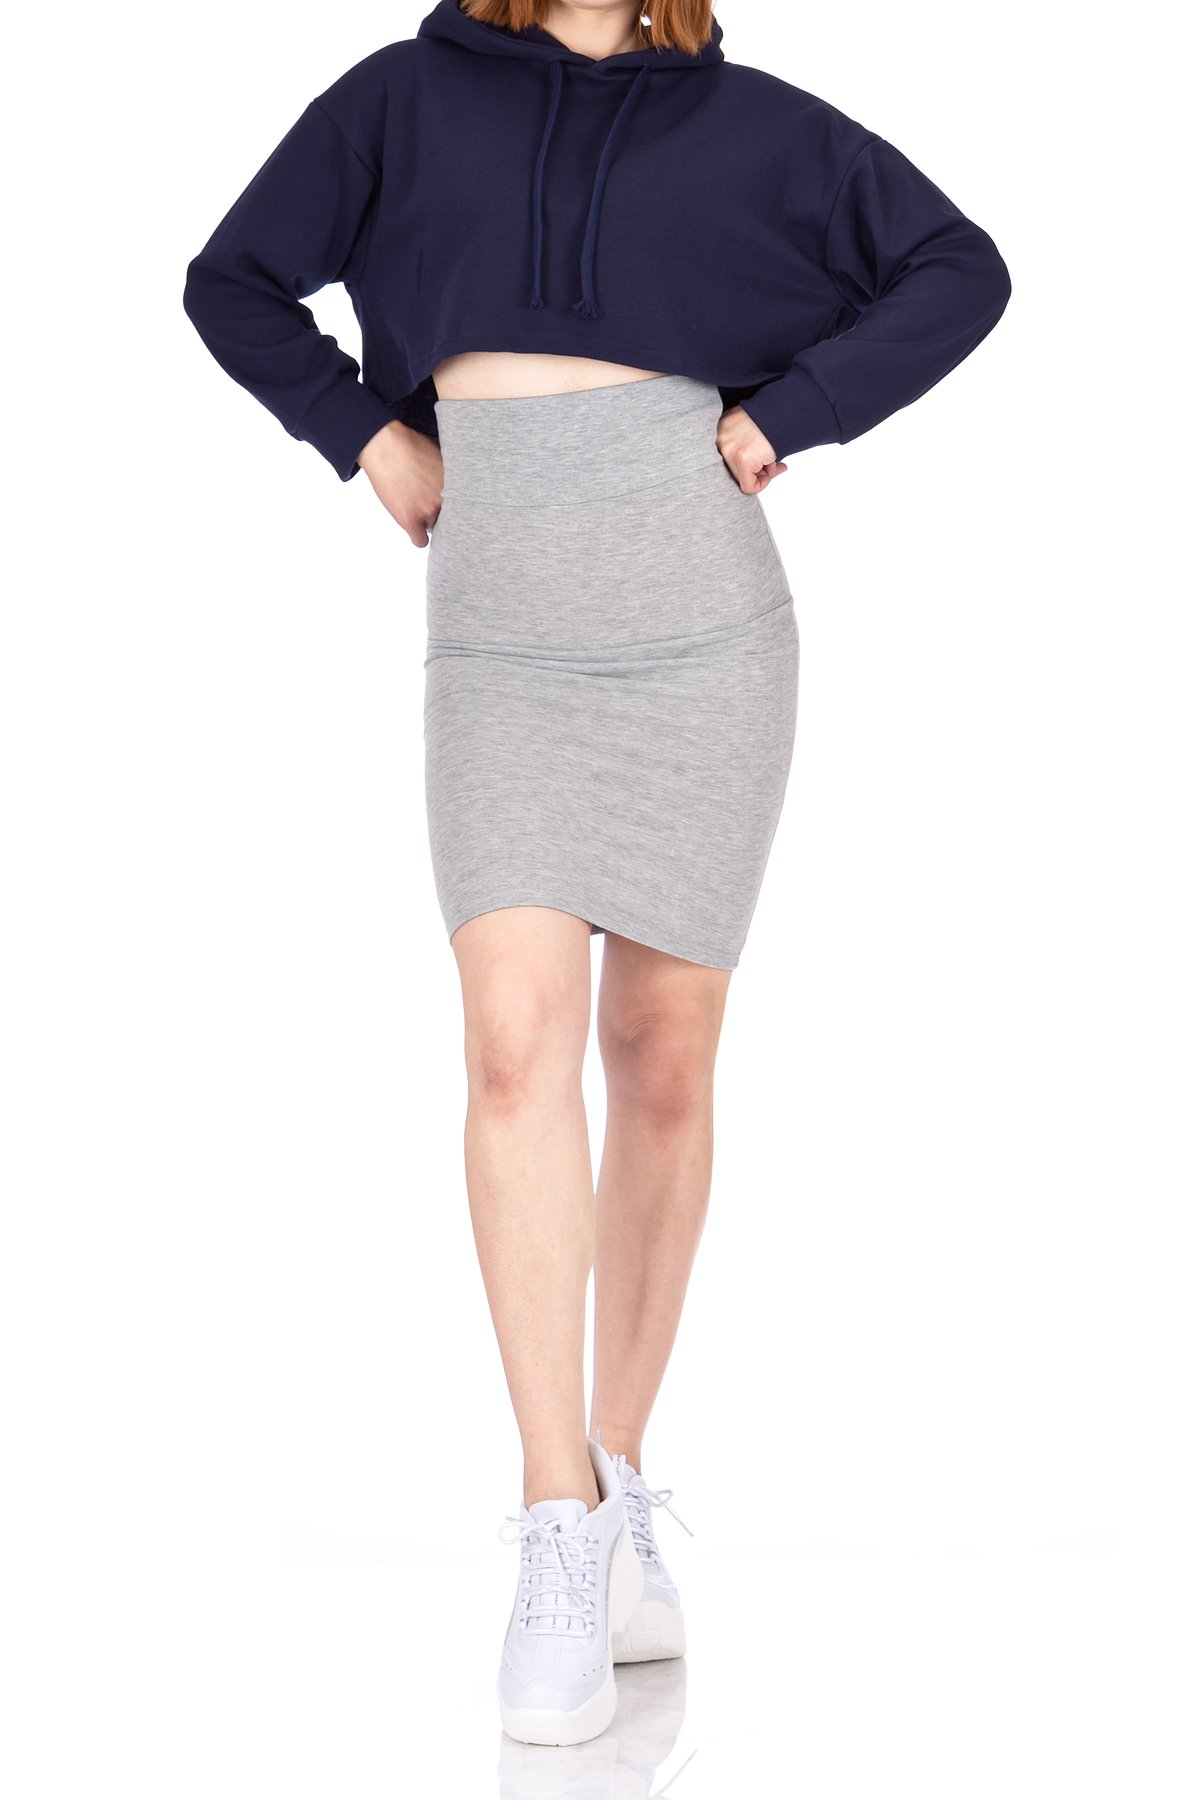 Every Occasion Stretch Pull on Wide High Waist Bodycon Pencil Knee Length Midi Skirt Melange 05